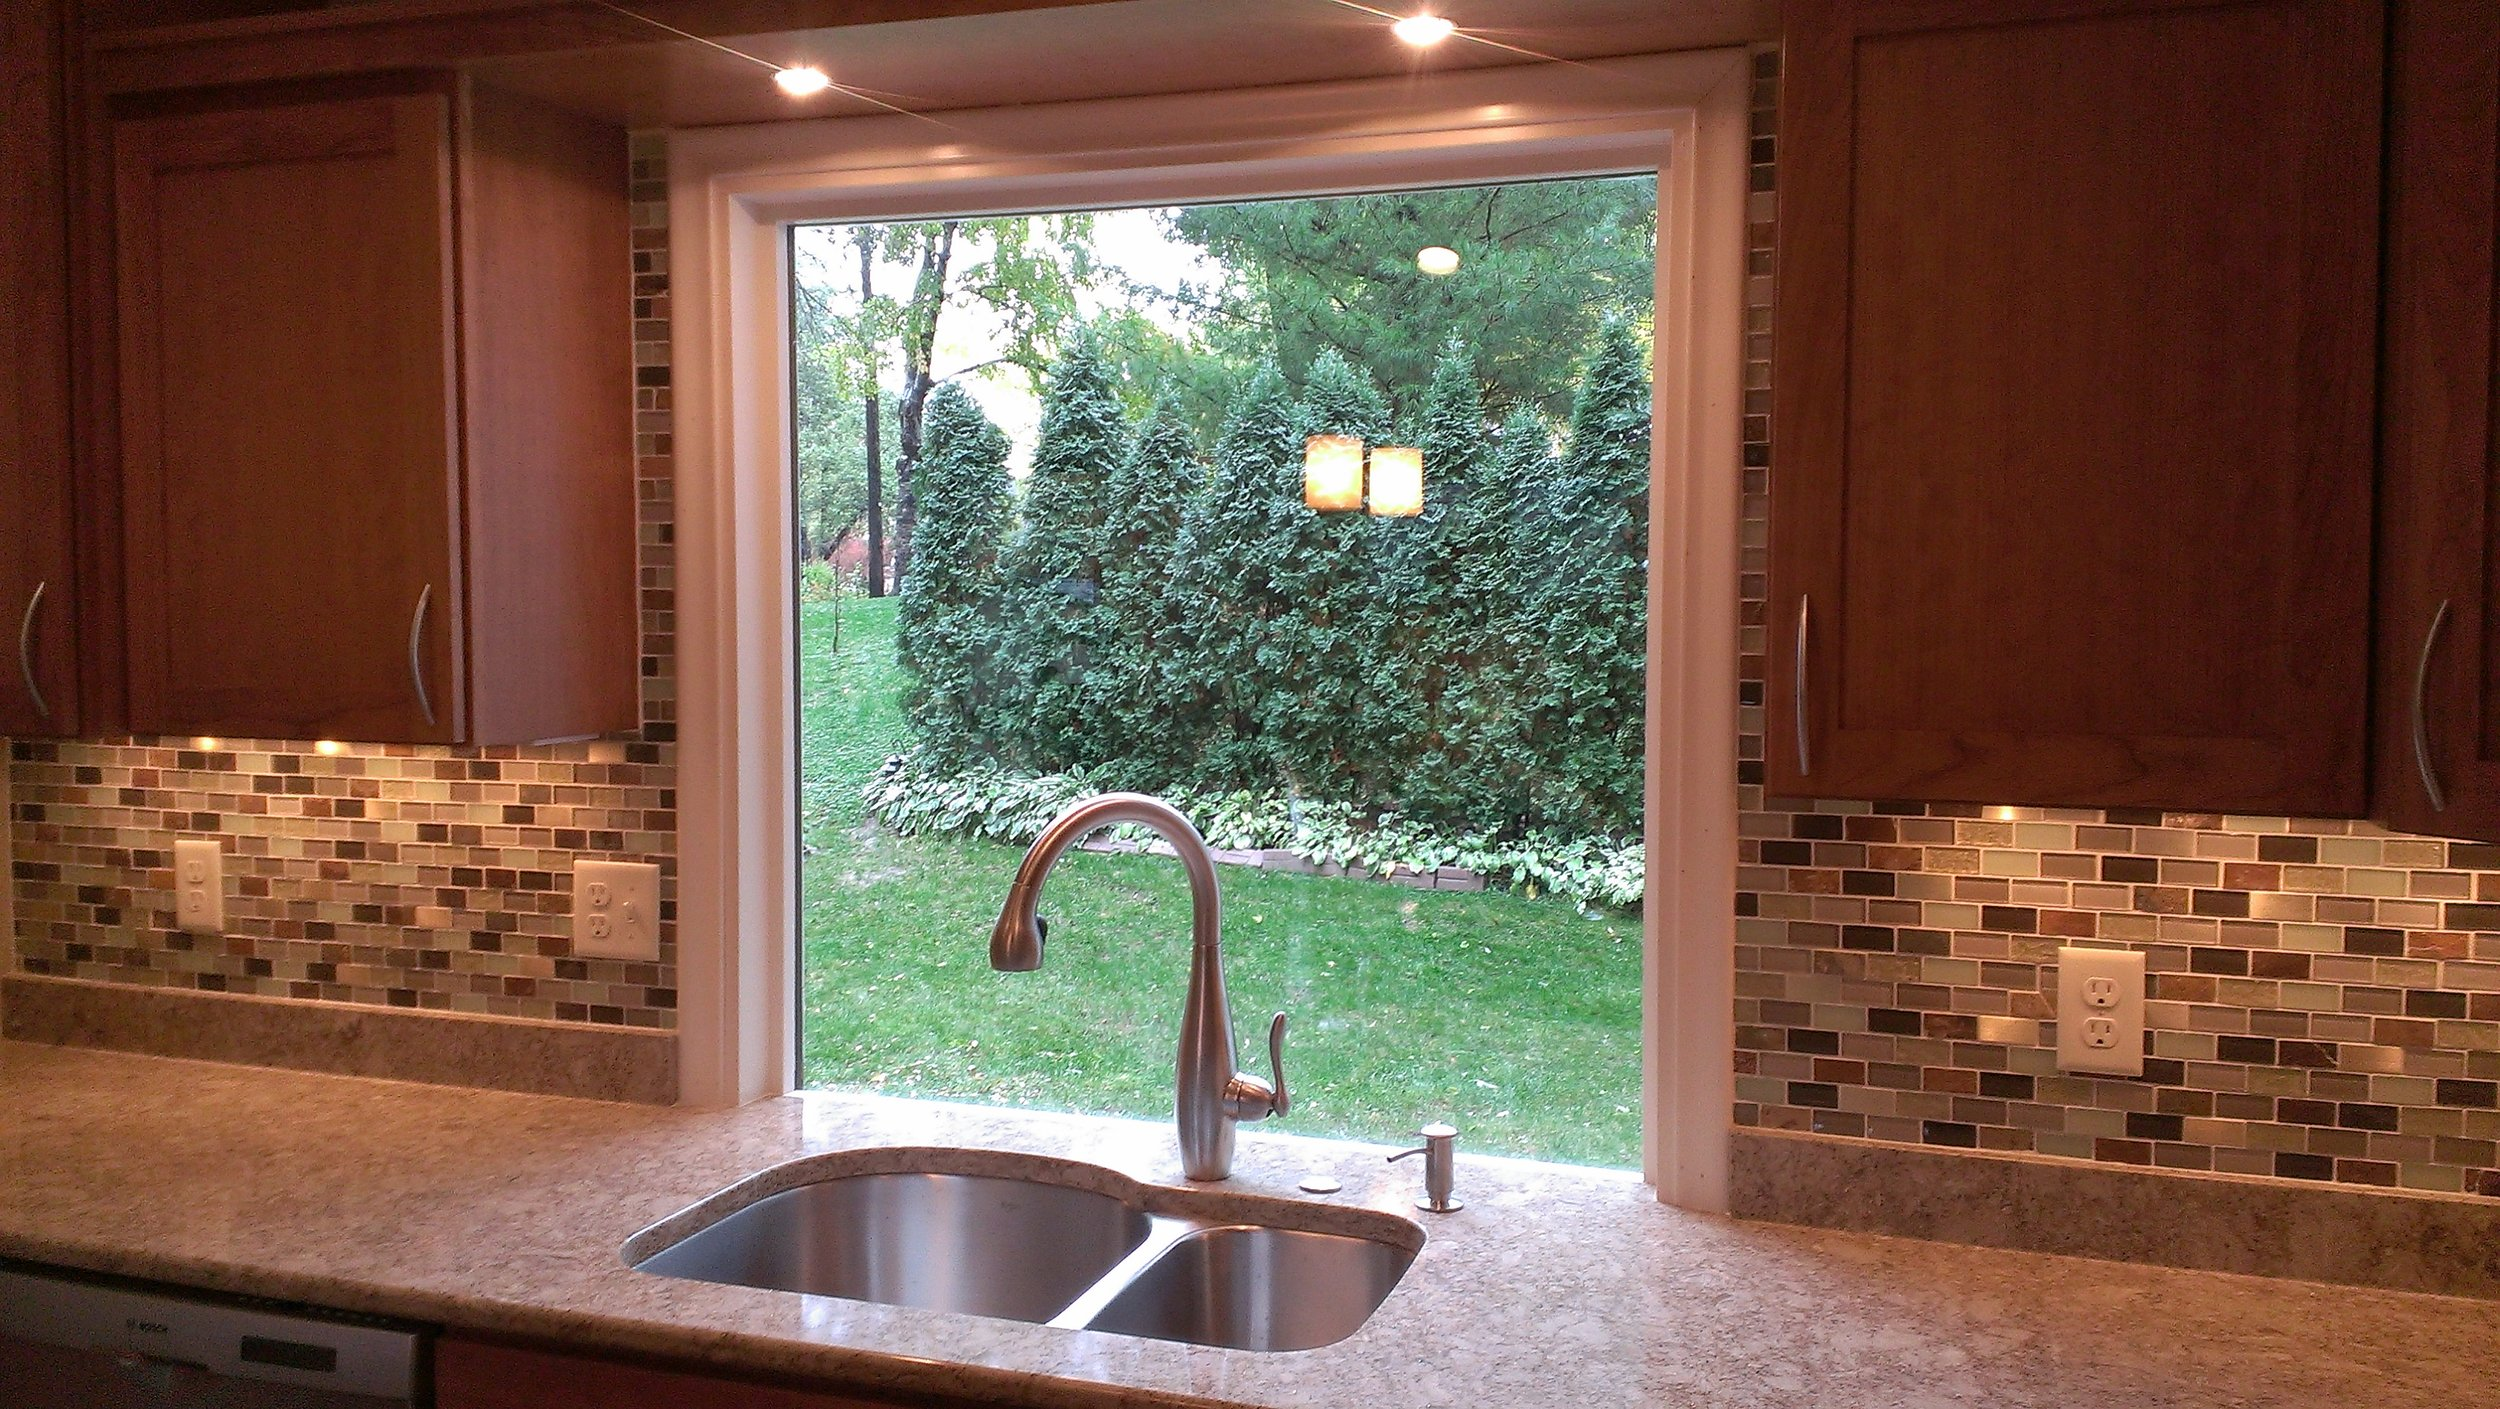 New Kitchen Window Detail.jpg